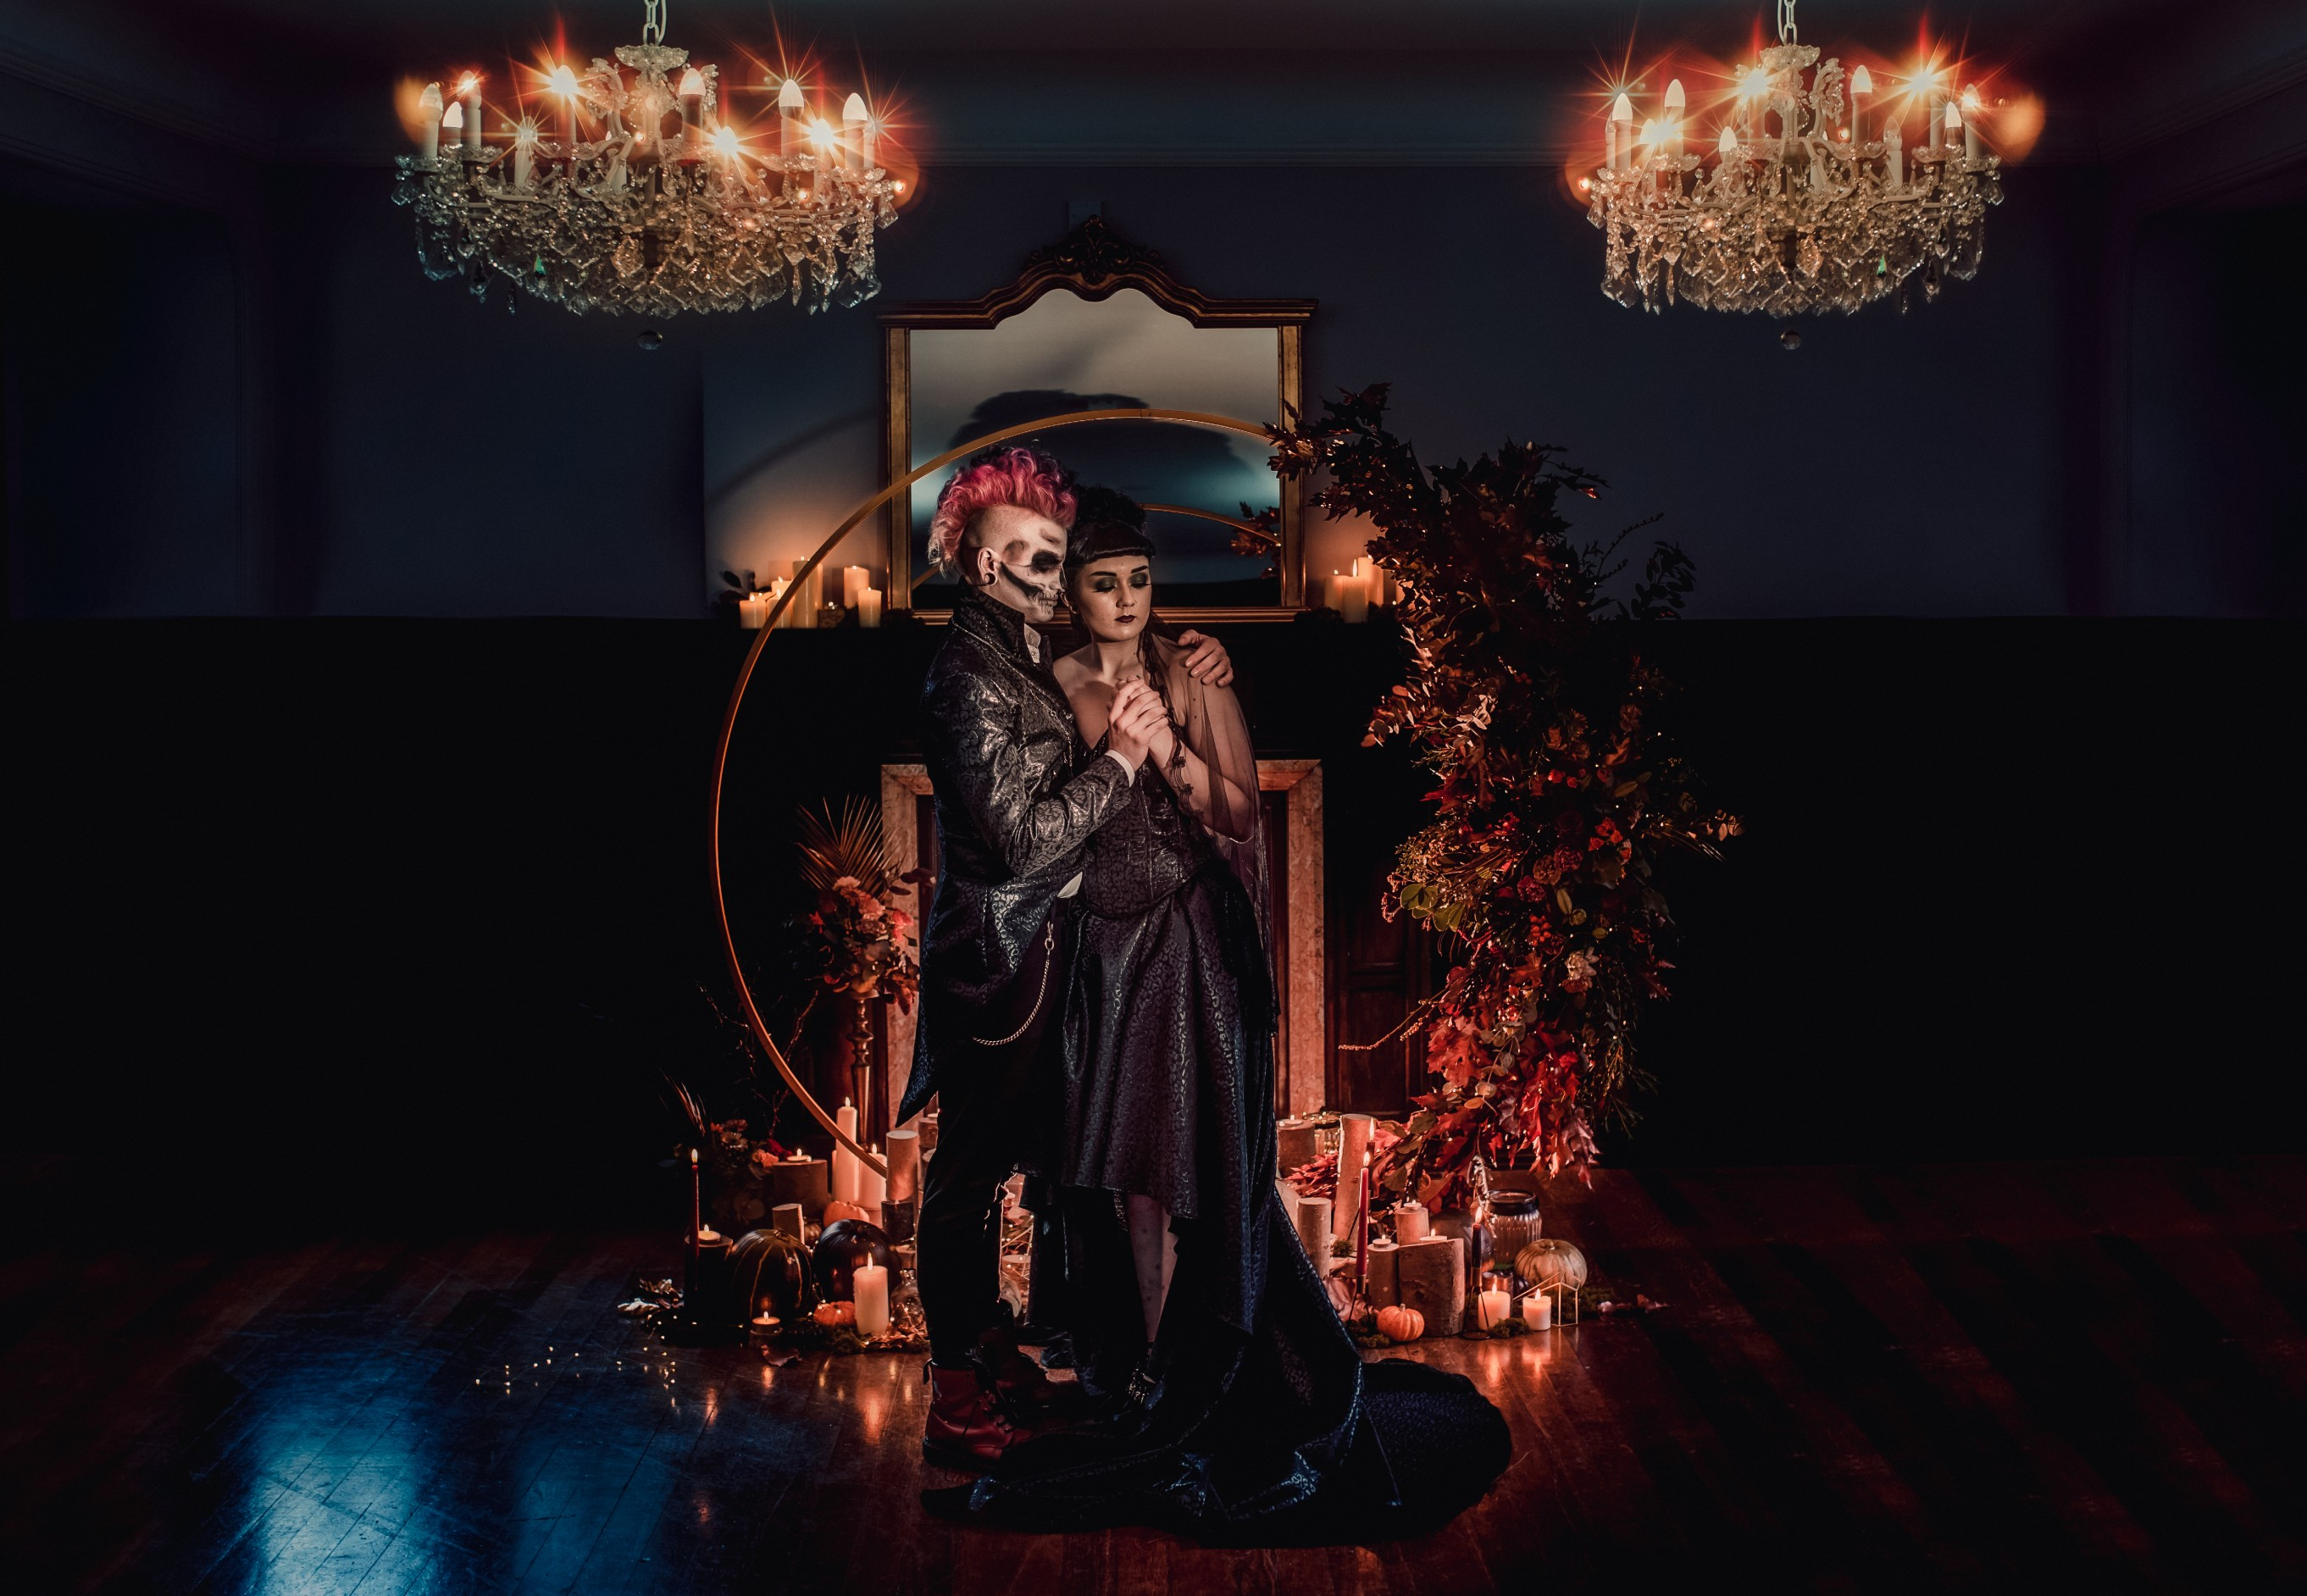 Gothic halloween wedding couple in the candlelight lit by two dramatic chandeliers against a dramatic floral arch backdrop at abbot oak wedding venue